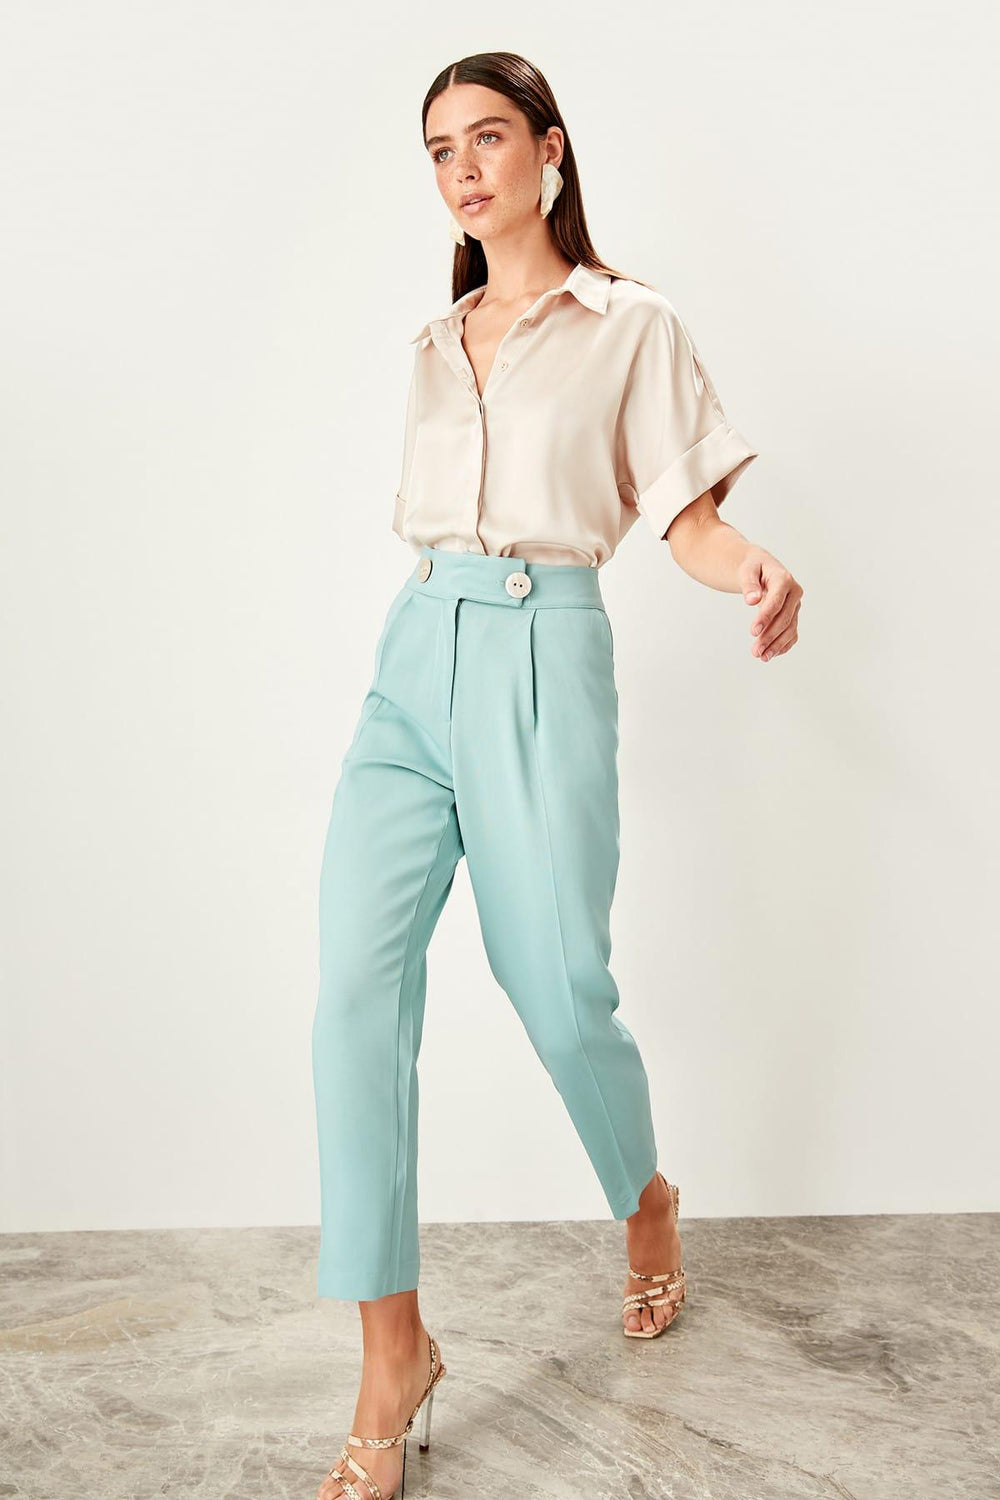 Miss Zut Miss Zut Mint High Waist Jacket and Pants Suit Pants Miss Zut &CO